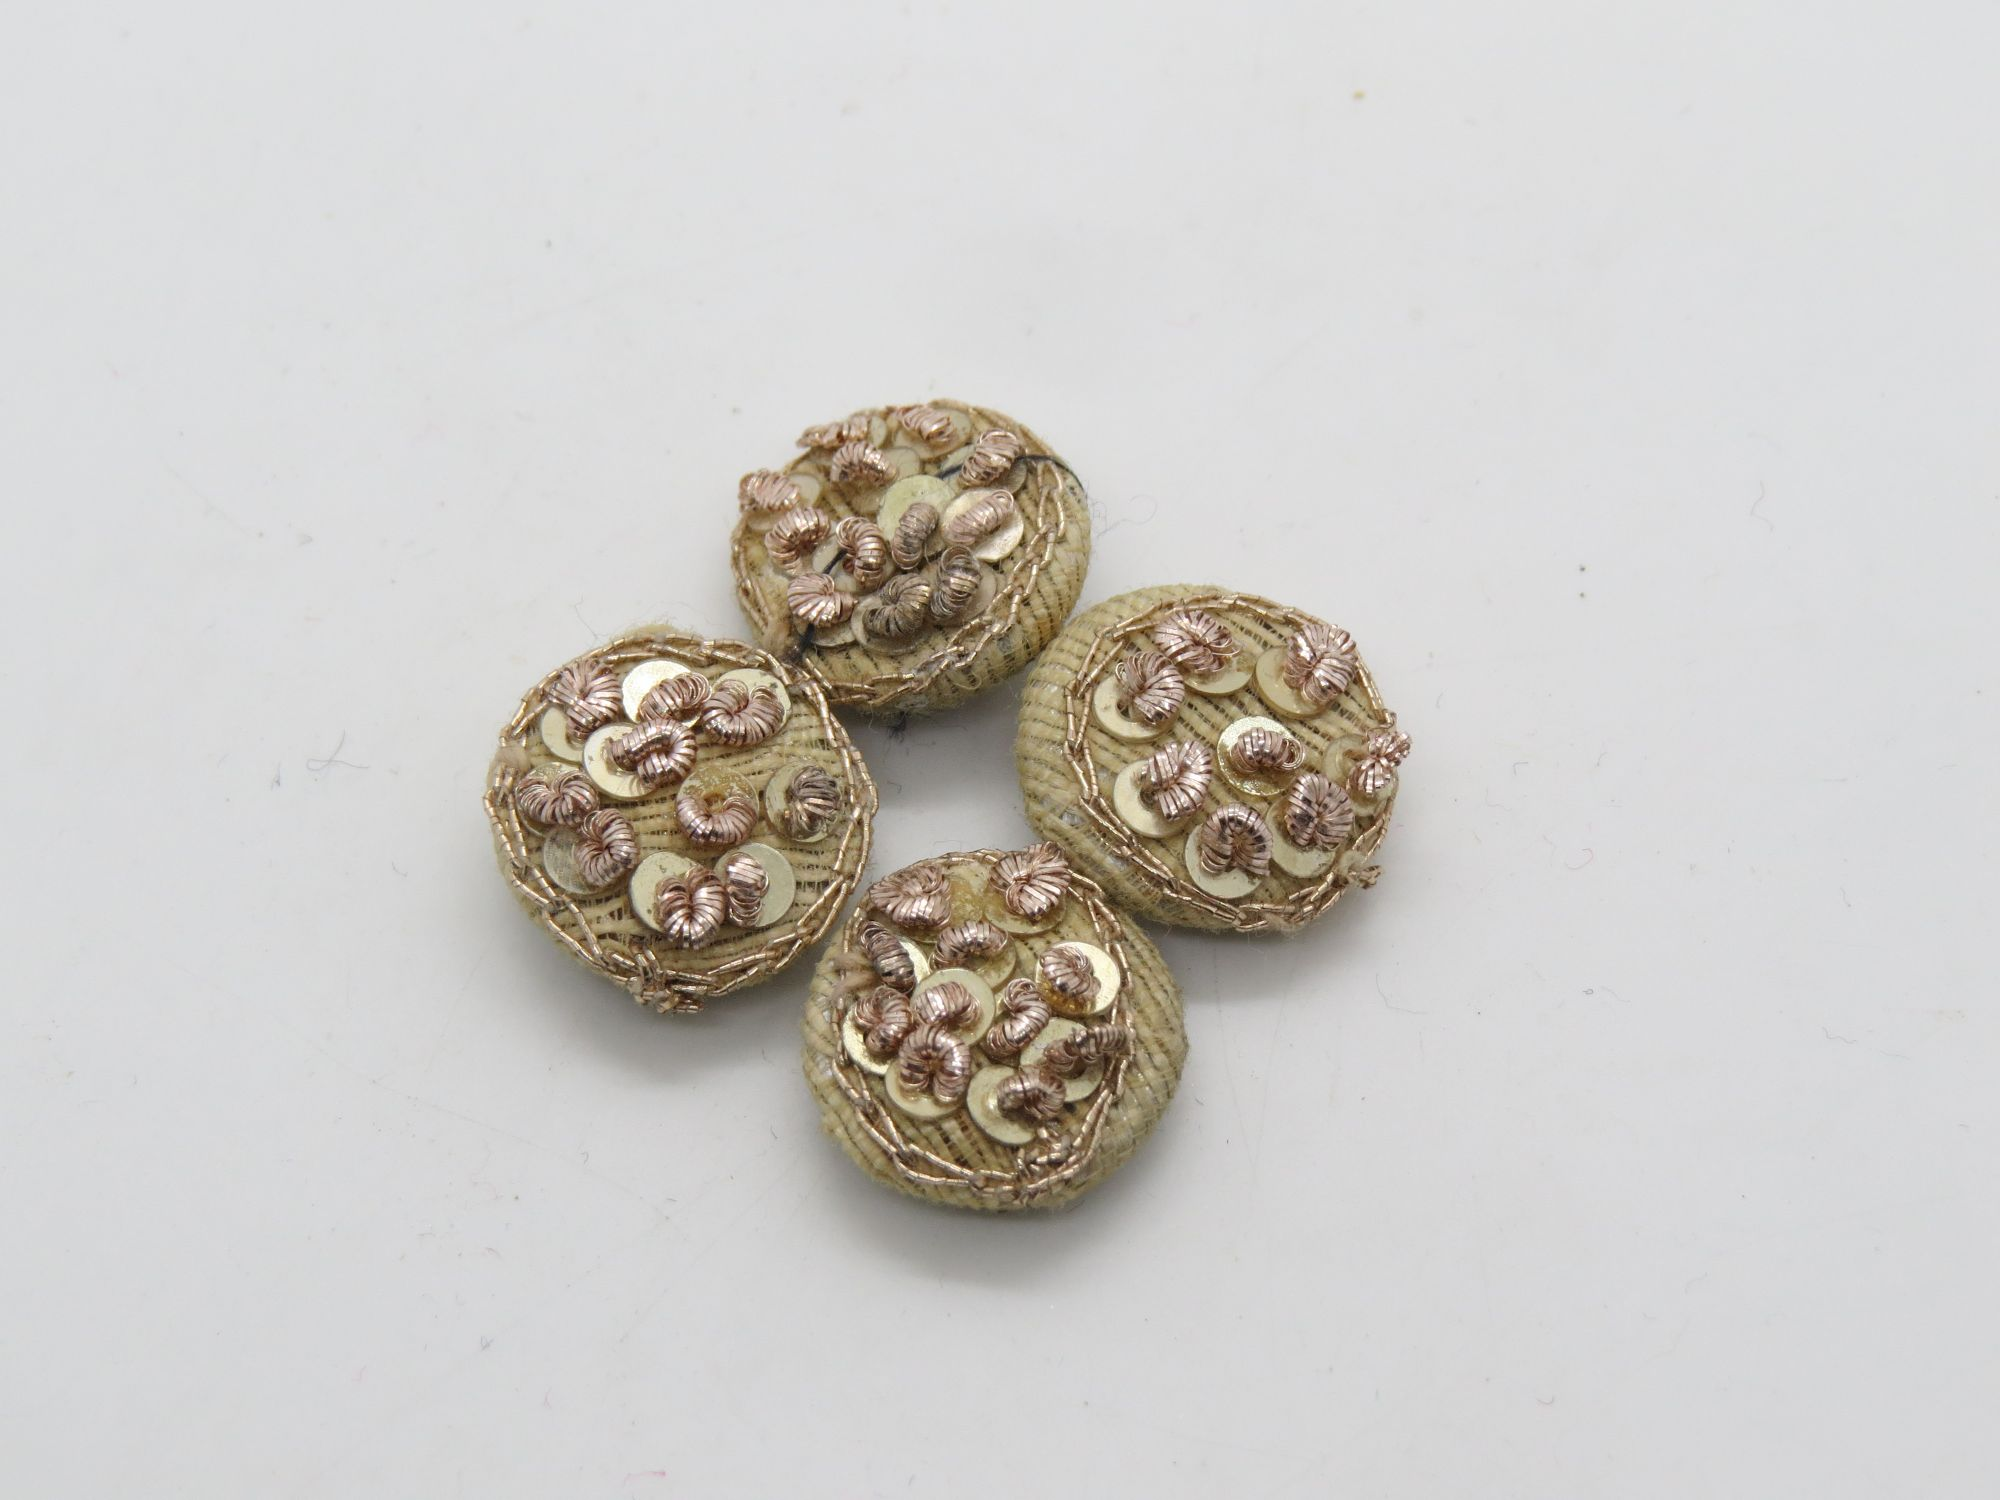 Hand Tikki Zardozi Work Embellishment Button Indian Fancy Zari Zardozi Bridesmaids Design Decorative Hand Crafted Fabric Thread Work Sewing Buttons